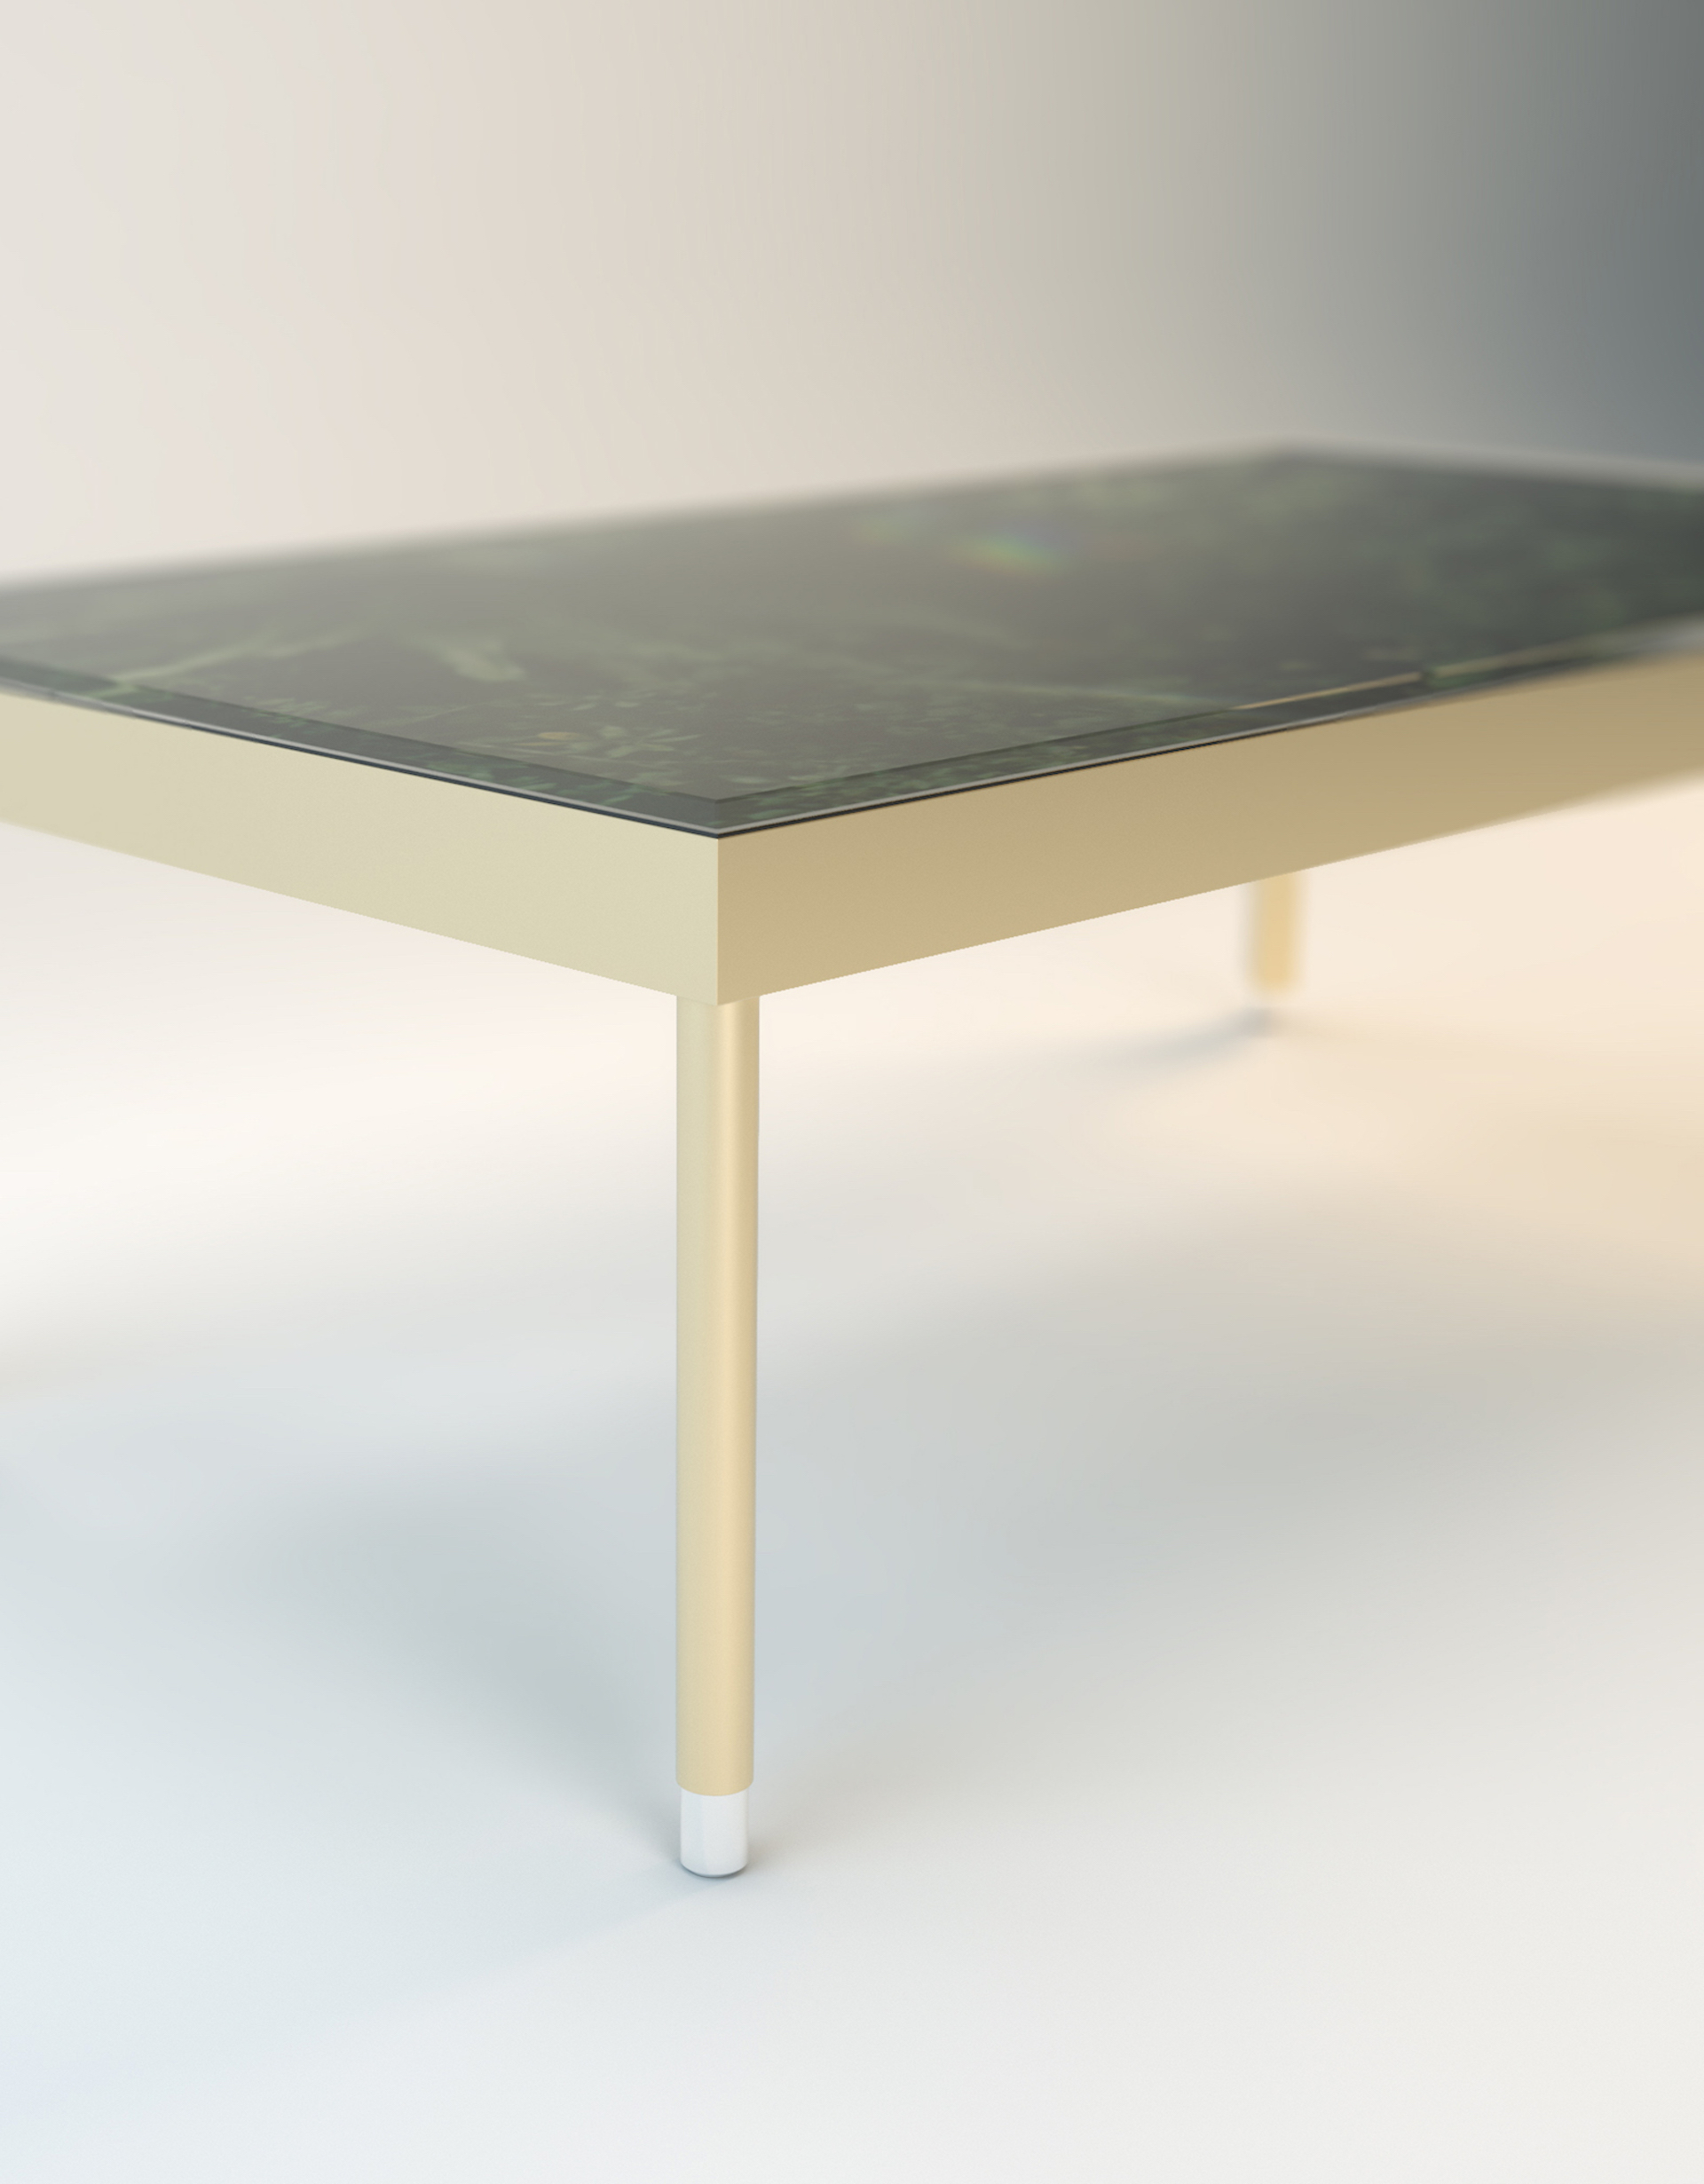 Water Resistant Table - Steel frame & feetSafety glass, 50 kg resistantNatural rubber